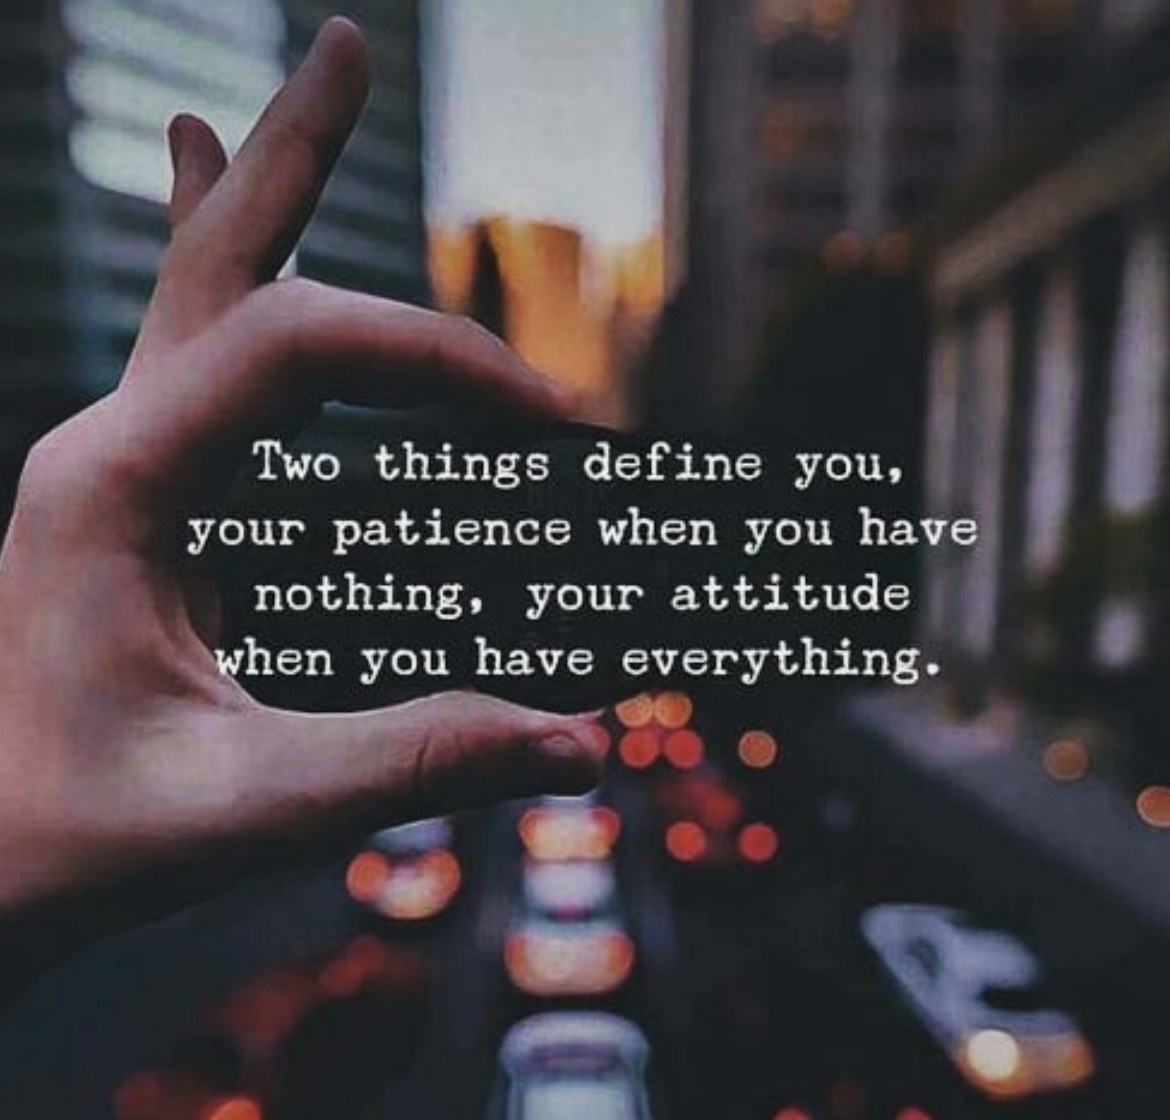 your patience when you hav nothing. your attitude . hen you have everything. Two things define you. '31. https://inspirational.ly